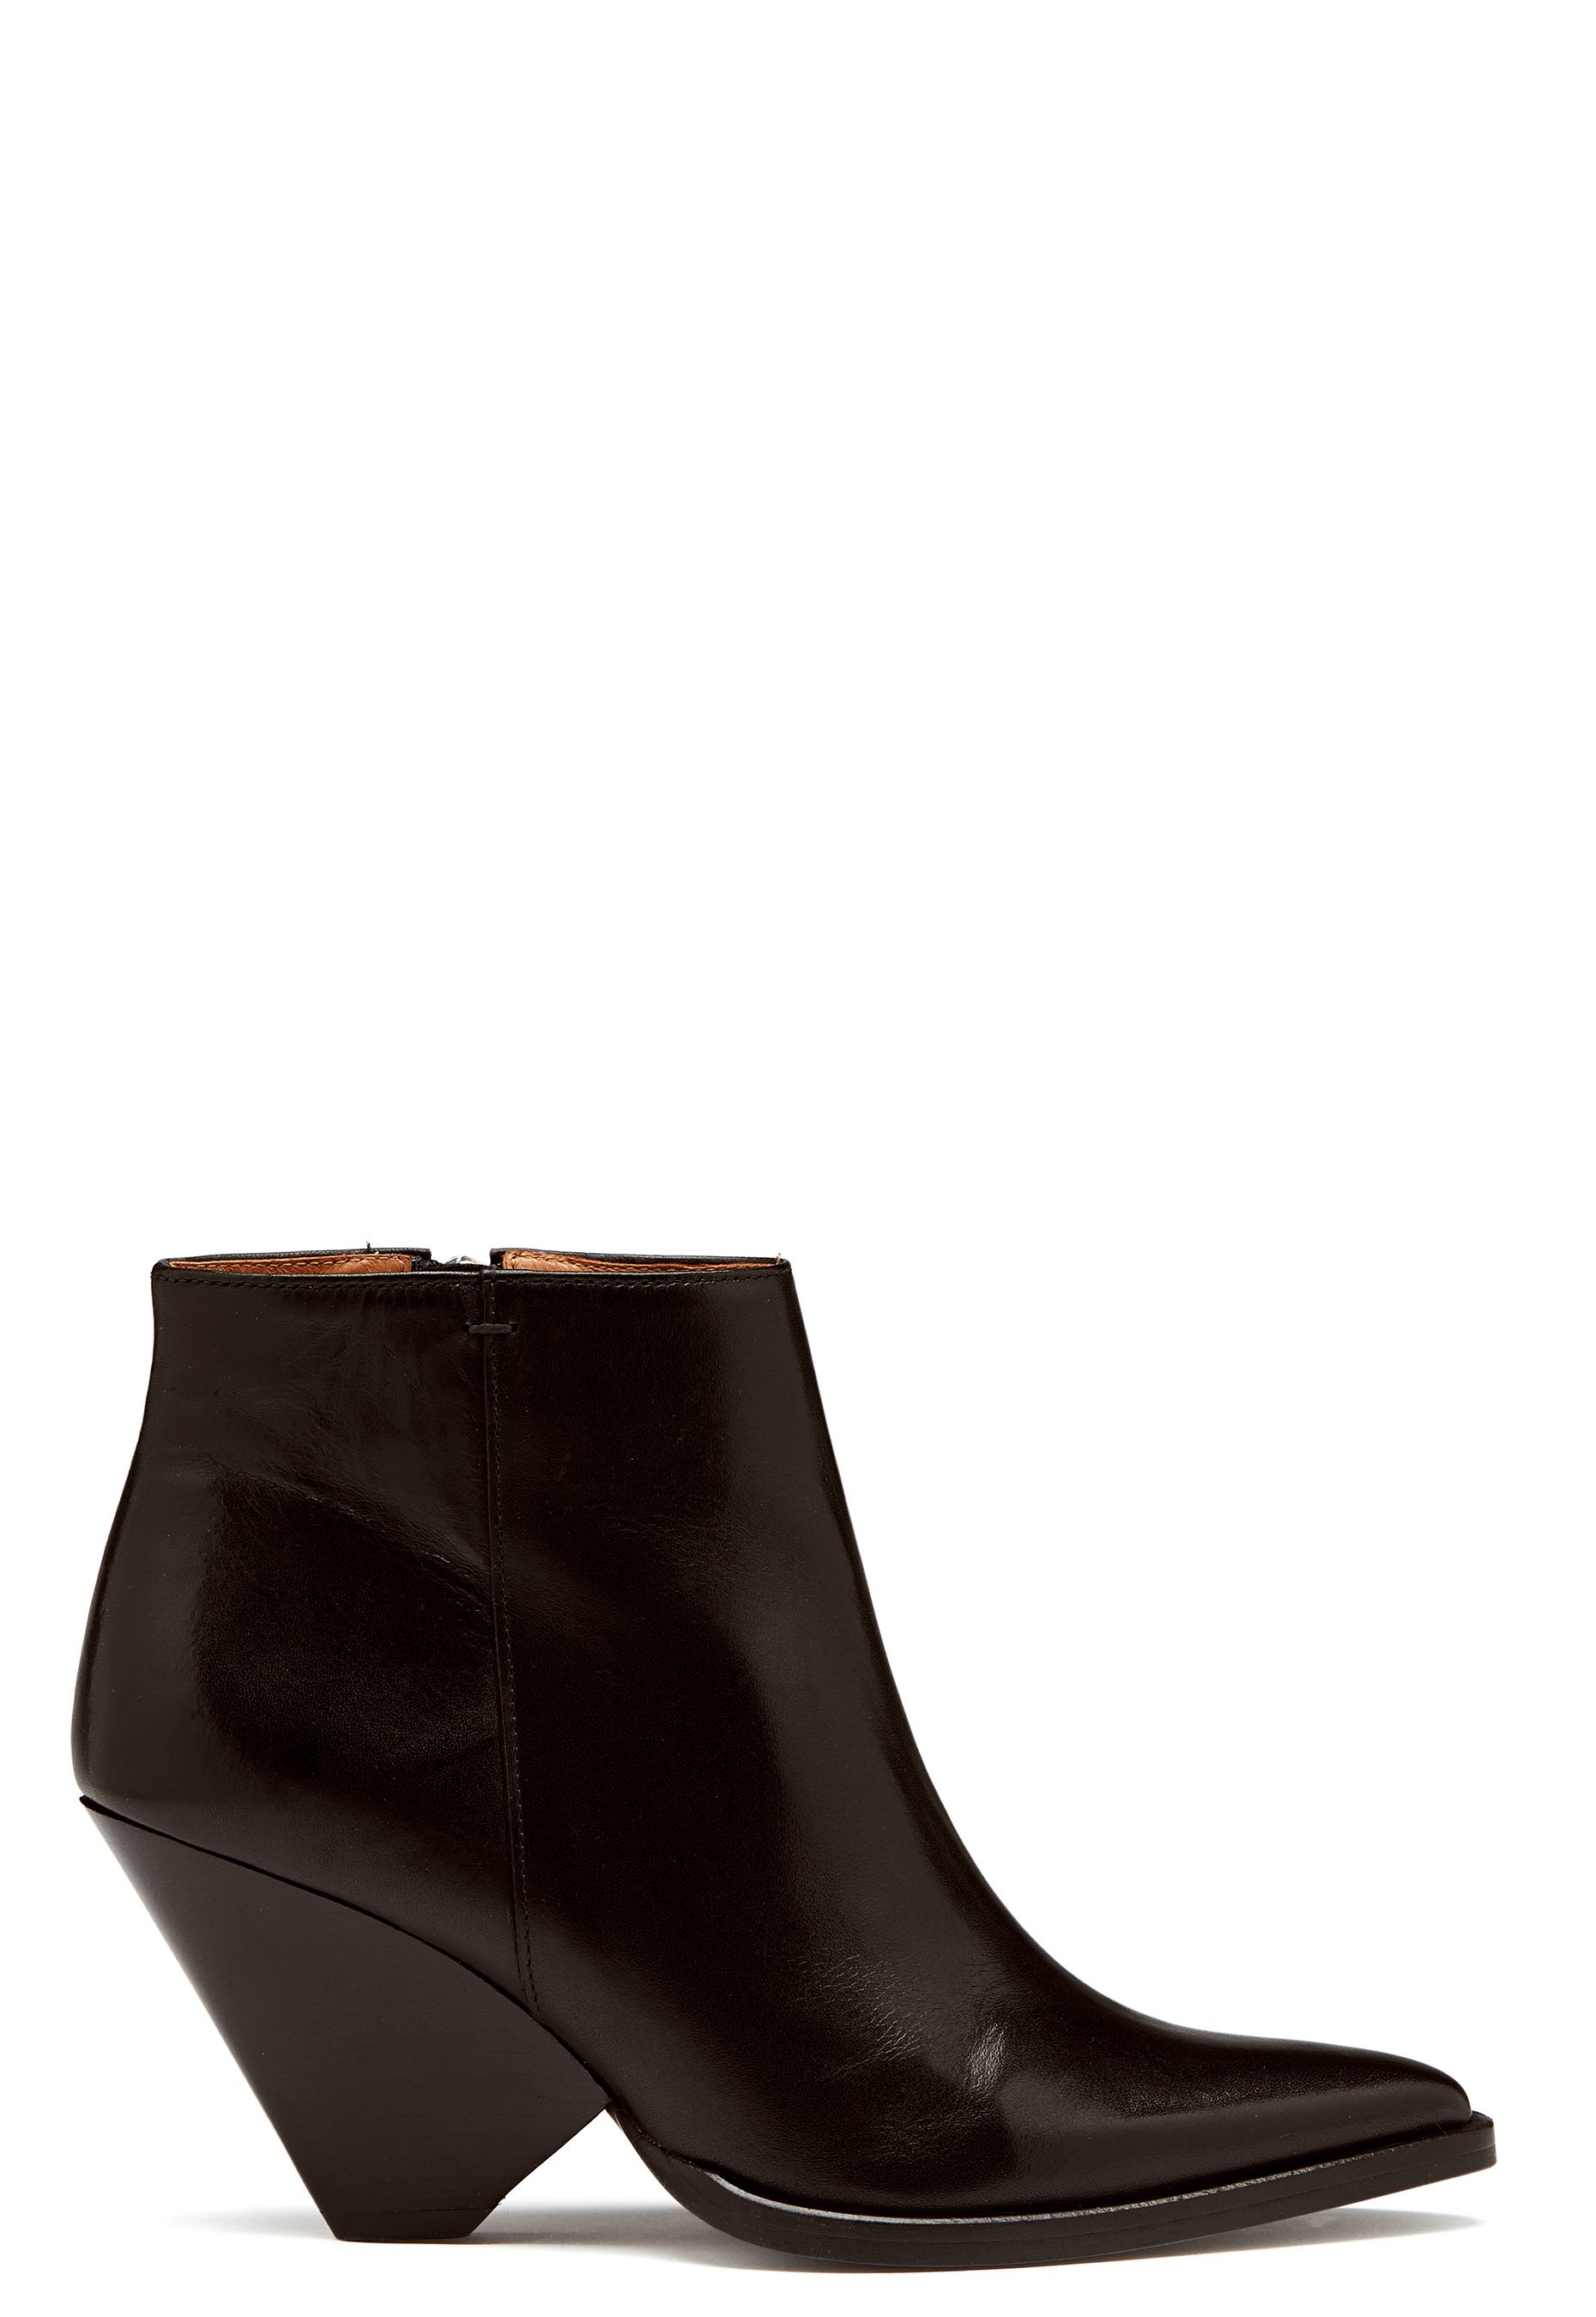 Twist & Tango Dallas Leather Boots Black Bubbleroom